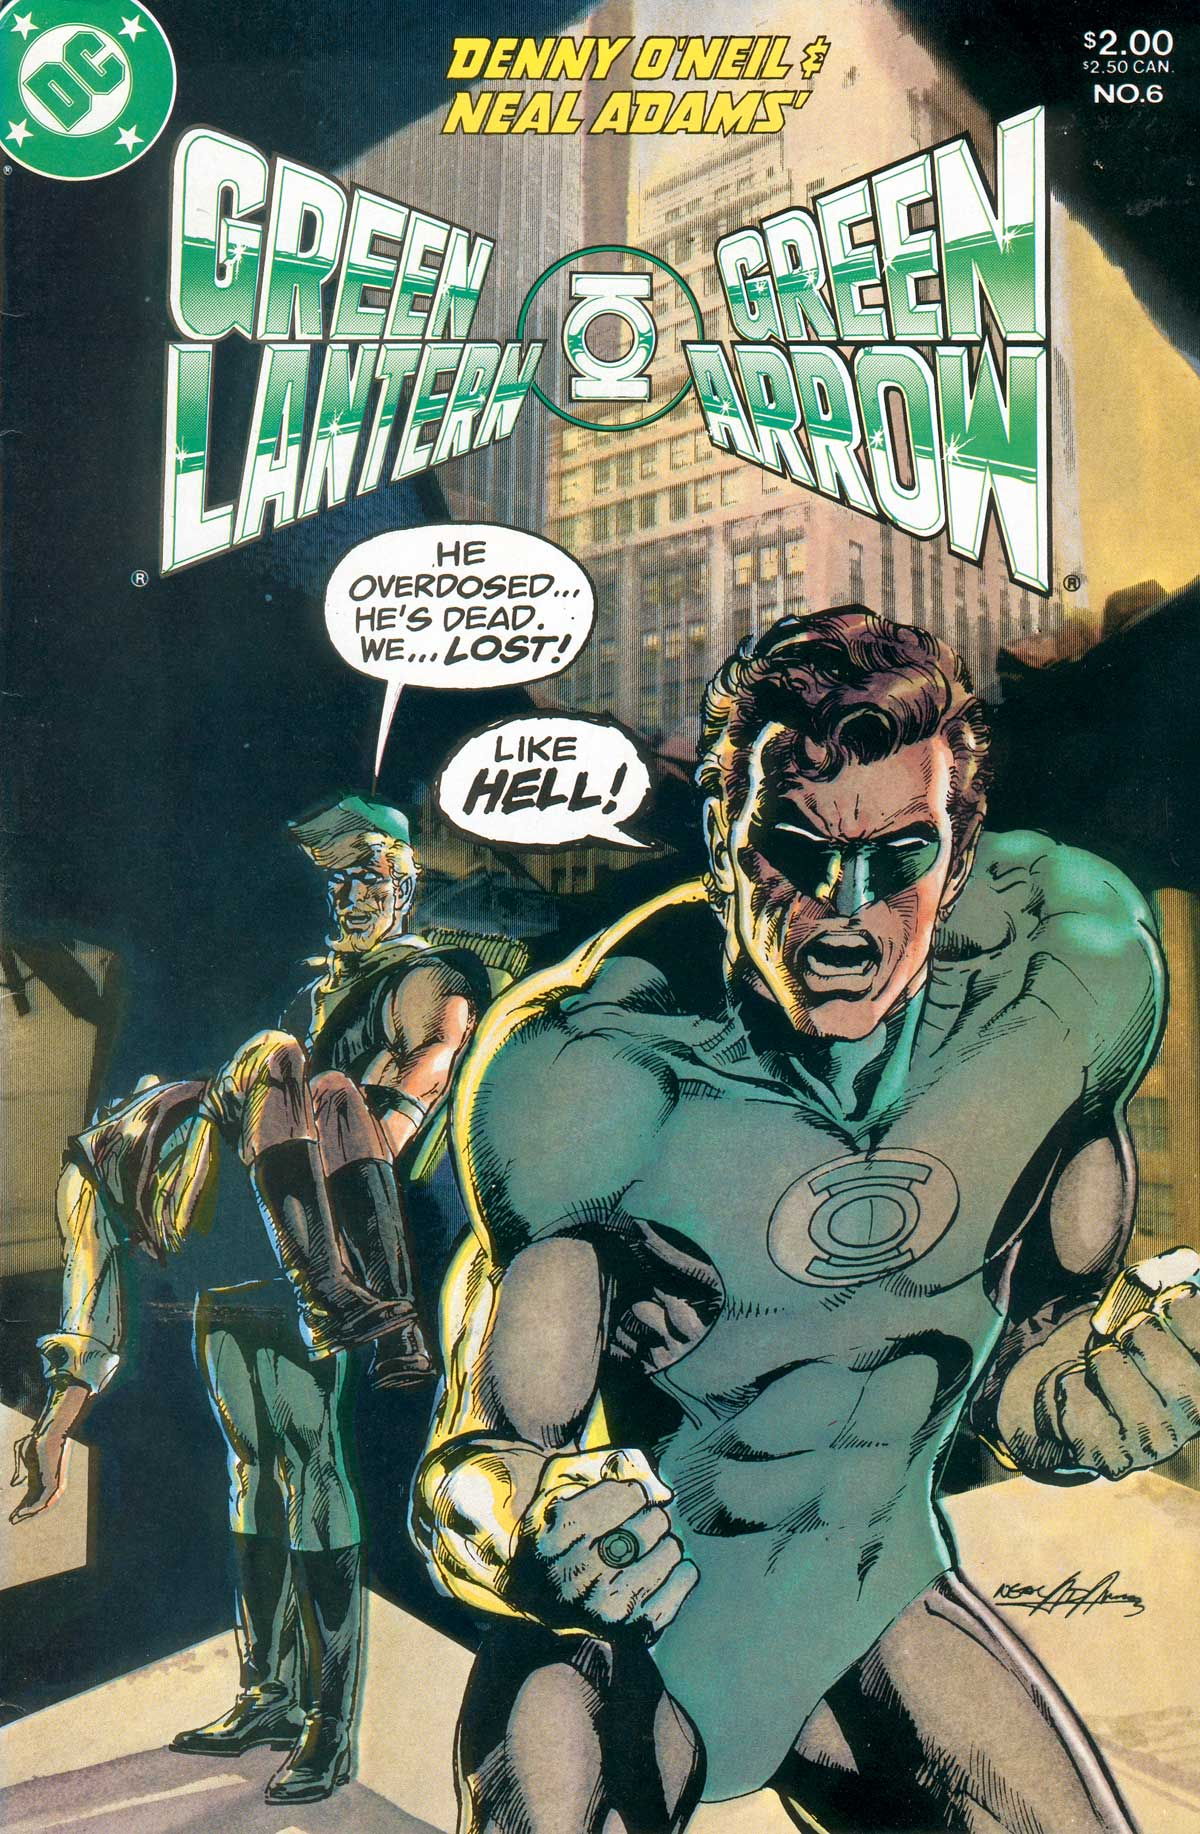 Green Lantern   Green Arrow Vol 1 6 All about gay porn: The Wedding Pt 2   Perfect ...